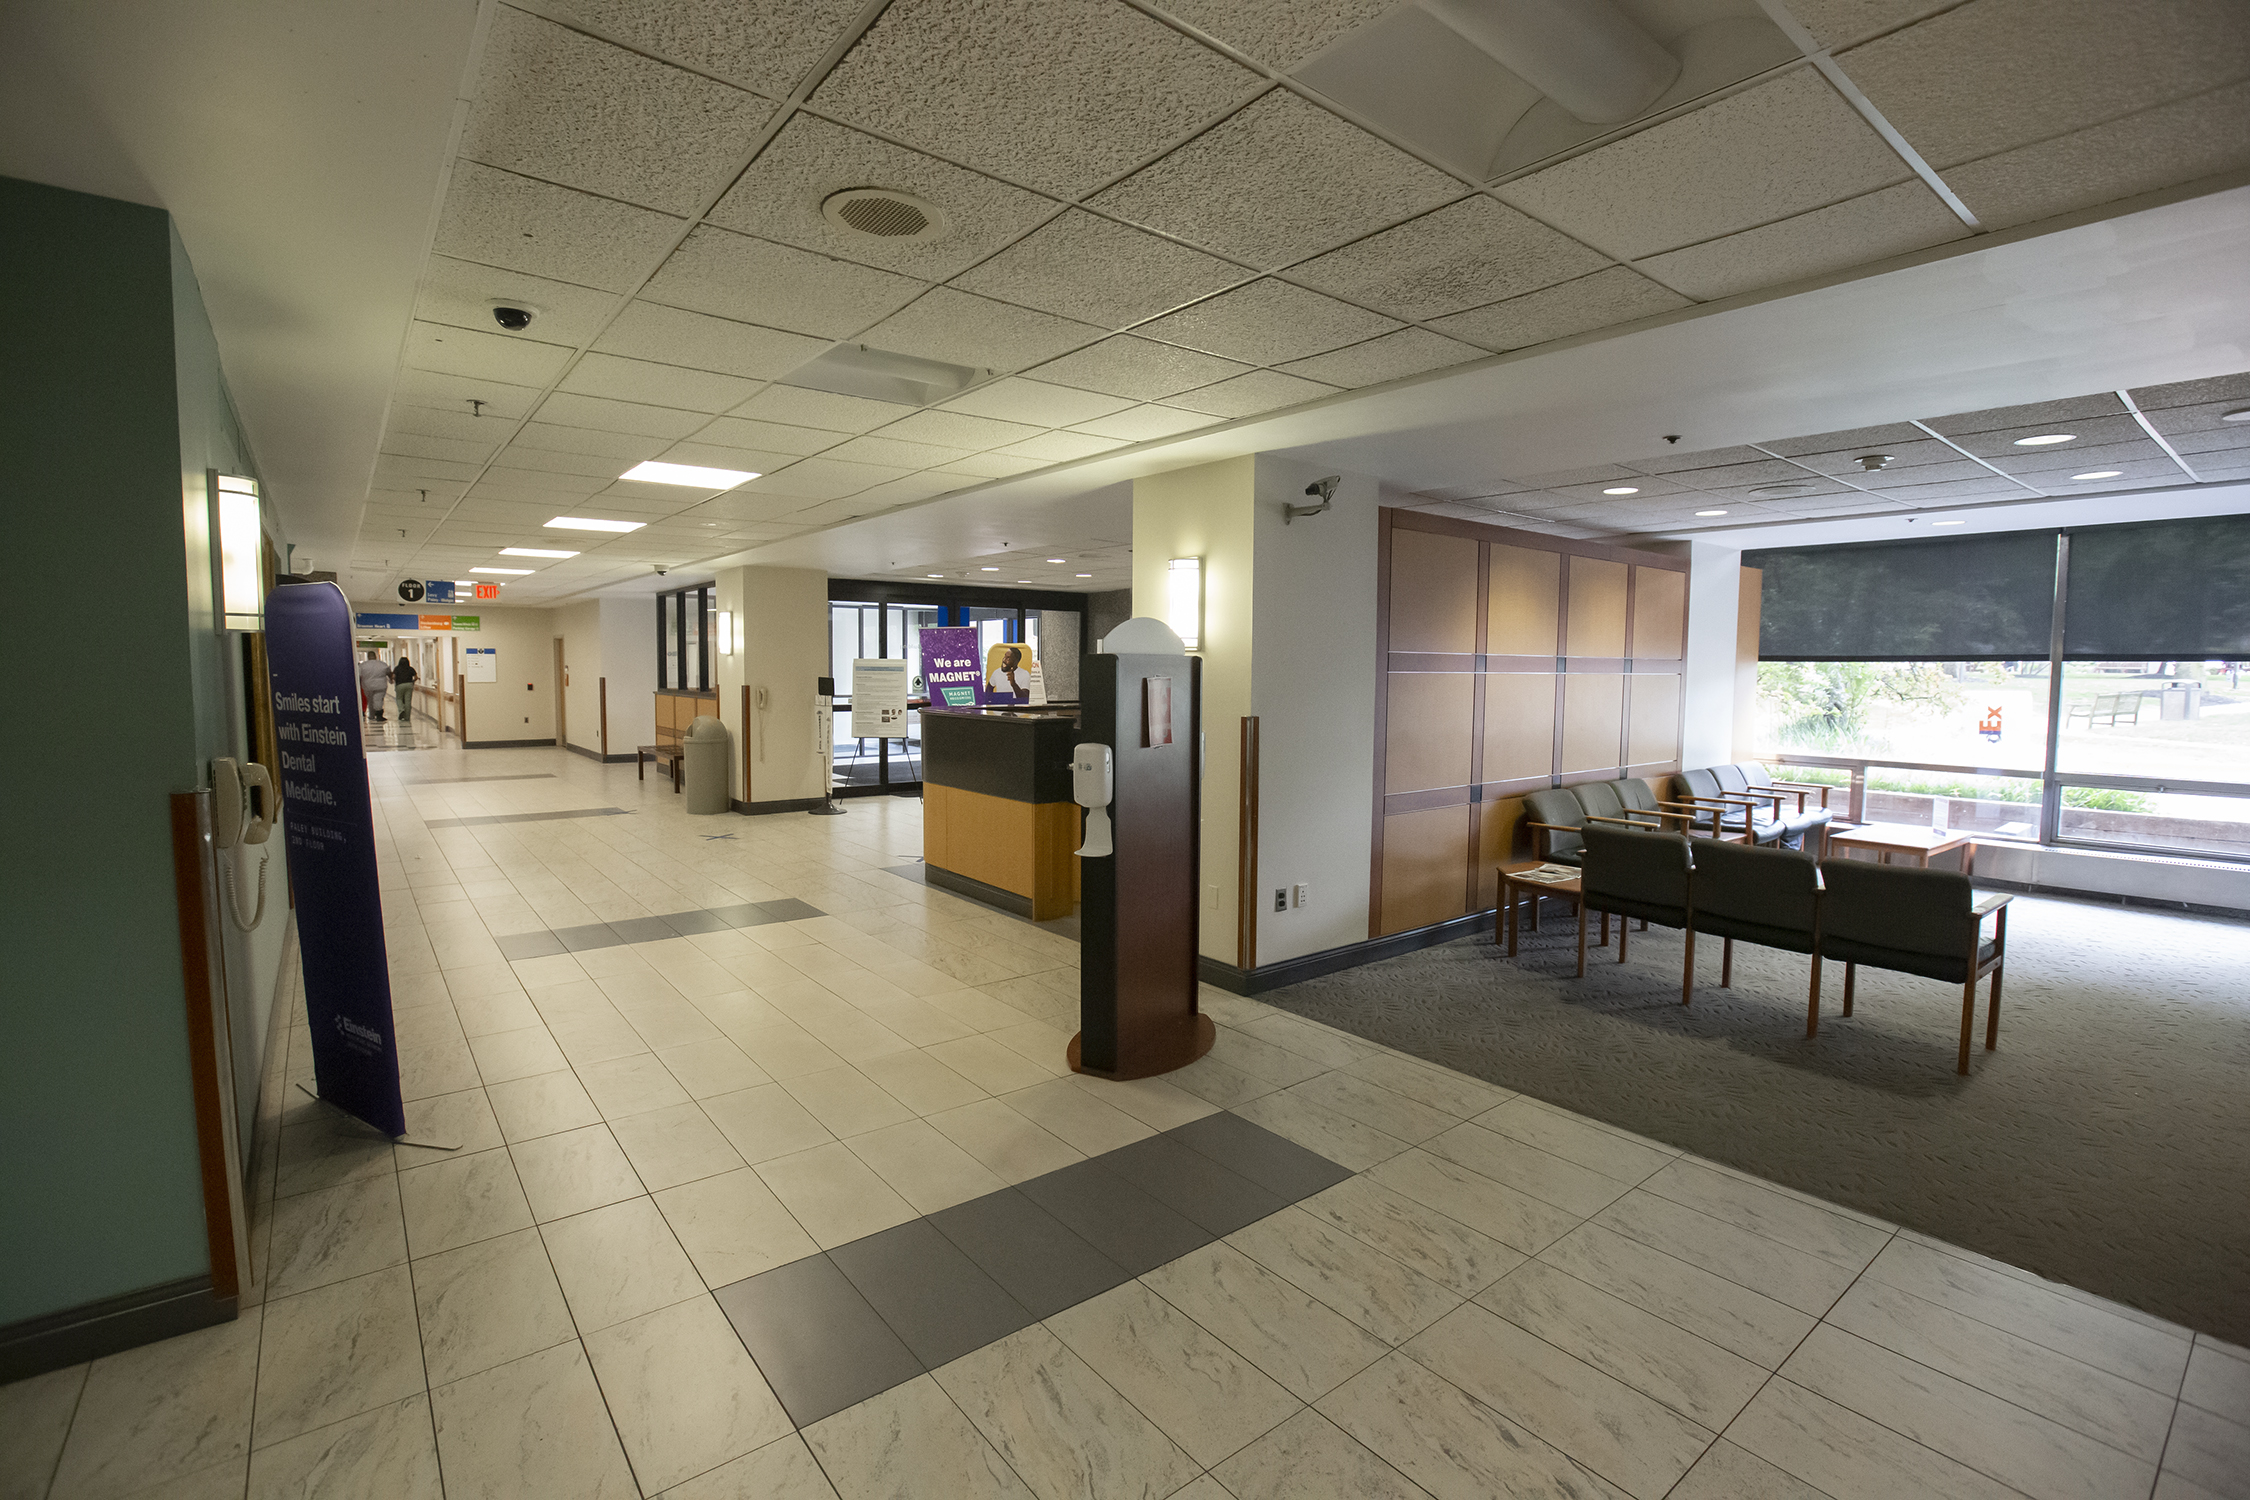 image of Levy Building lobby